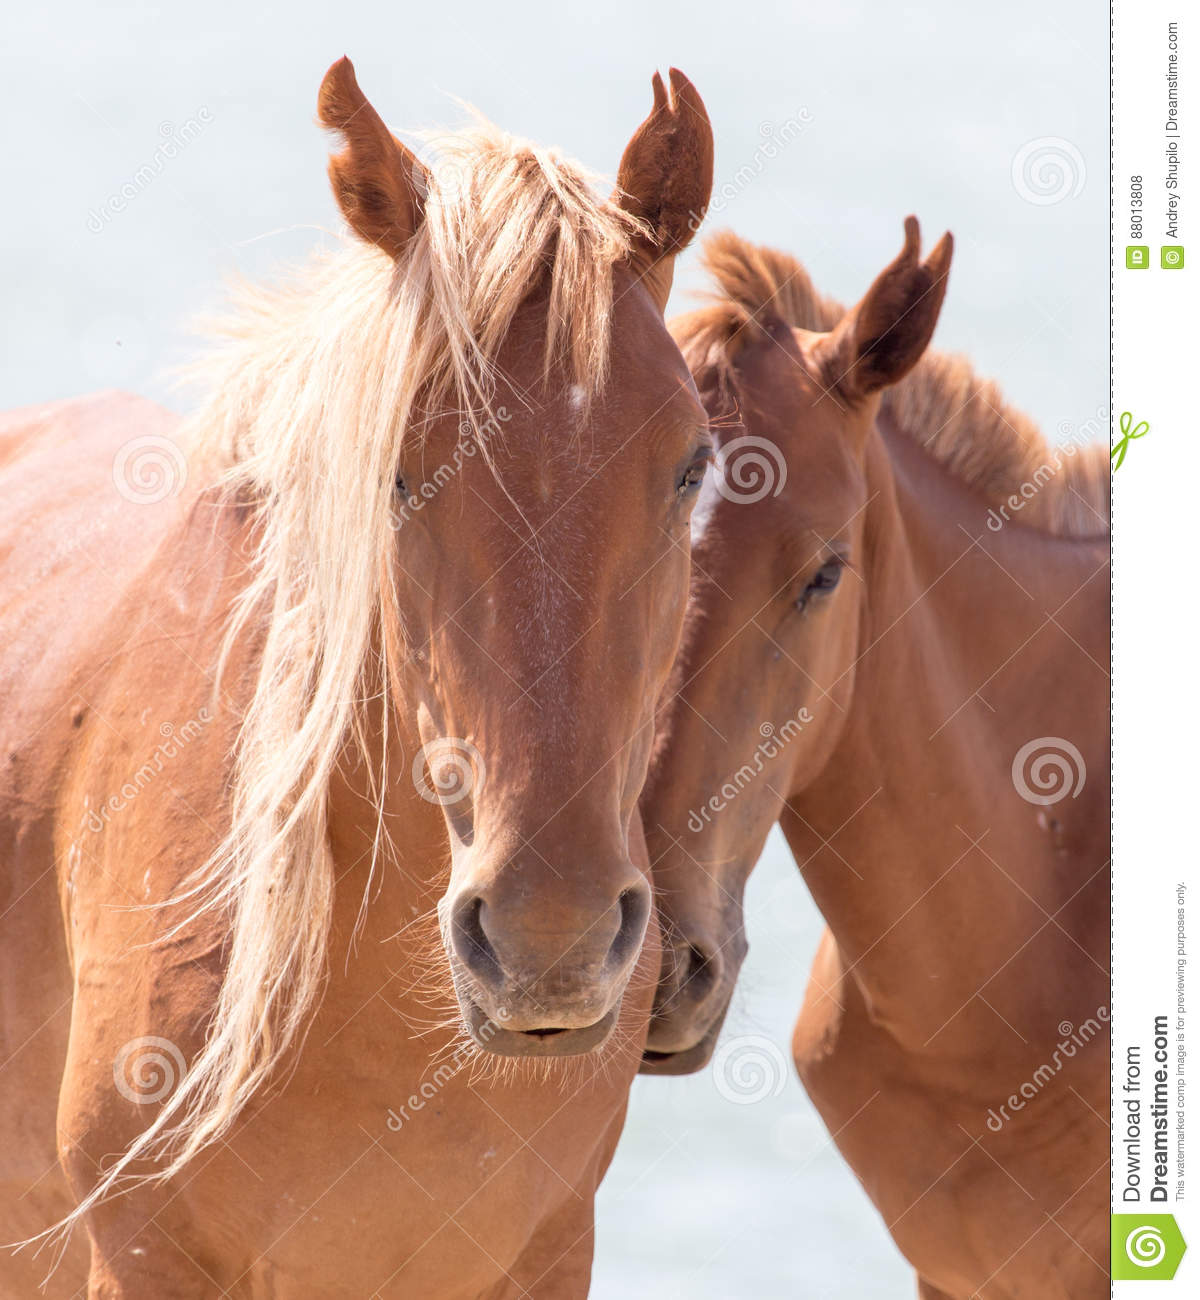 Two horses on the nature